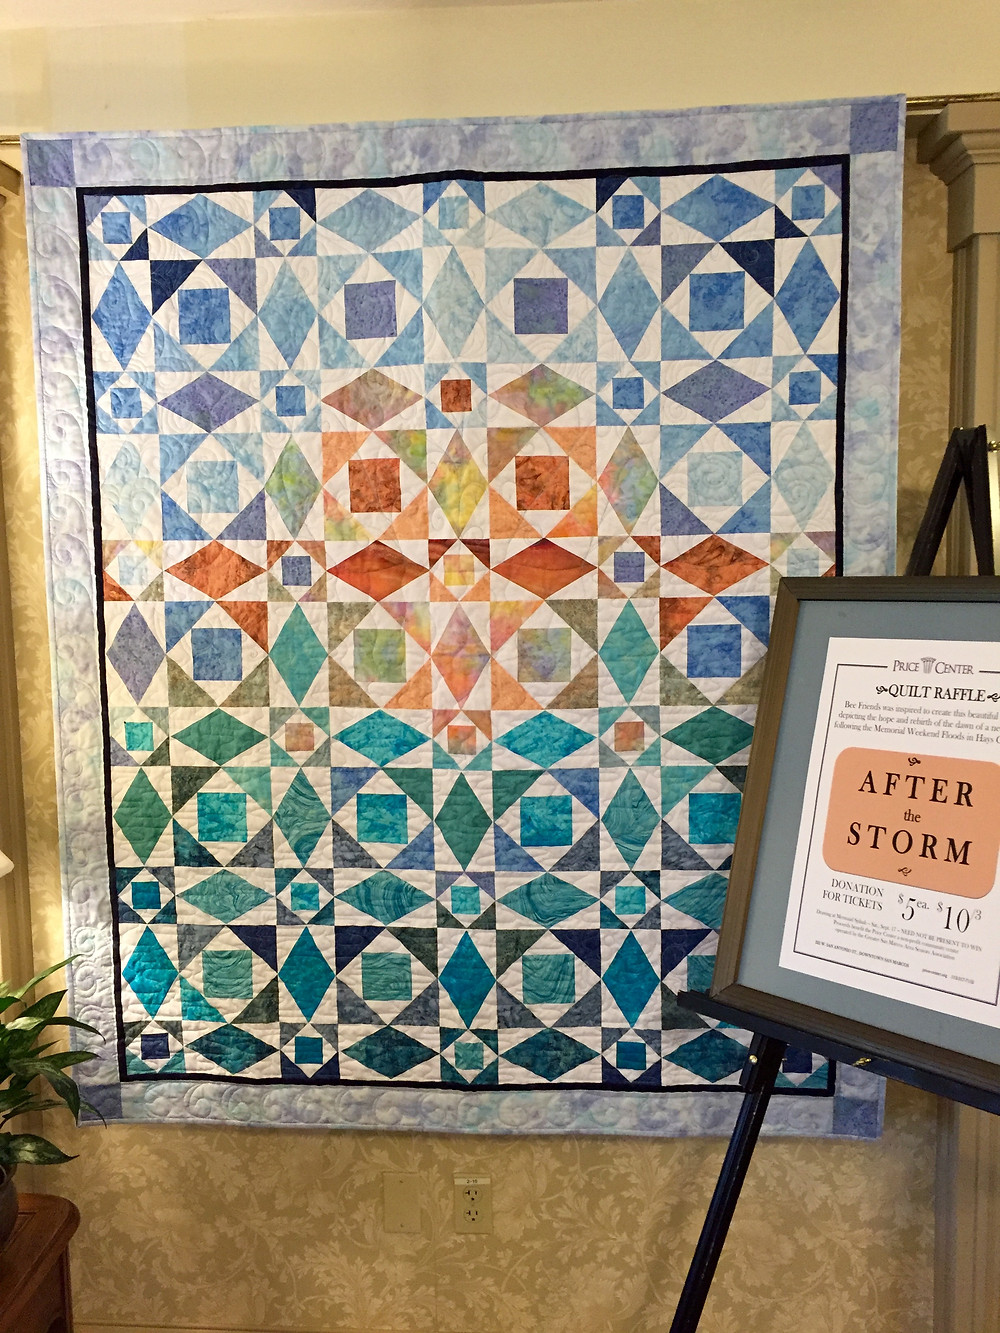 "Visitors to the Center on Sept.11 with have another chance to purchase a raffle ticket for this beautiful quilt depicting the dawn of a new day and the hope it inspires. The piece includes two ""hidden"" mermaids embedded in the quilting. The winner of the raffle will be announced at the Mermaid Splash on Sept. 17."